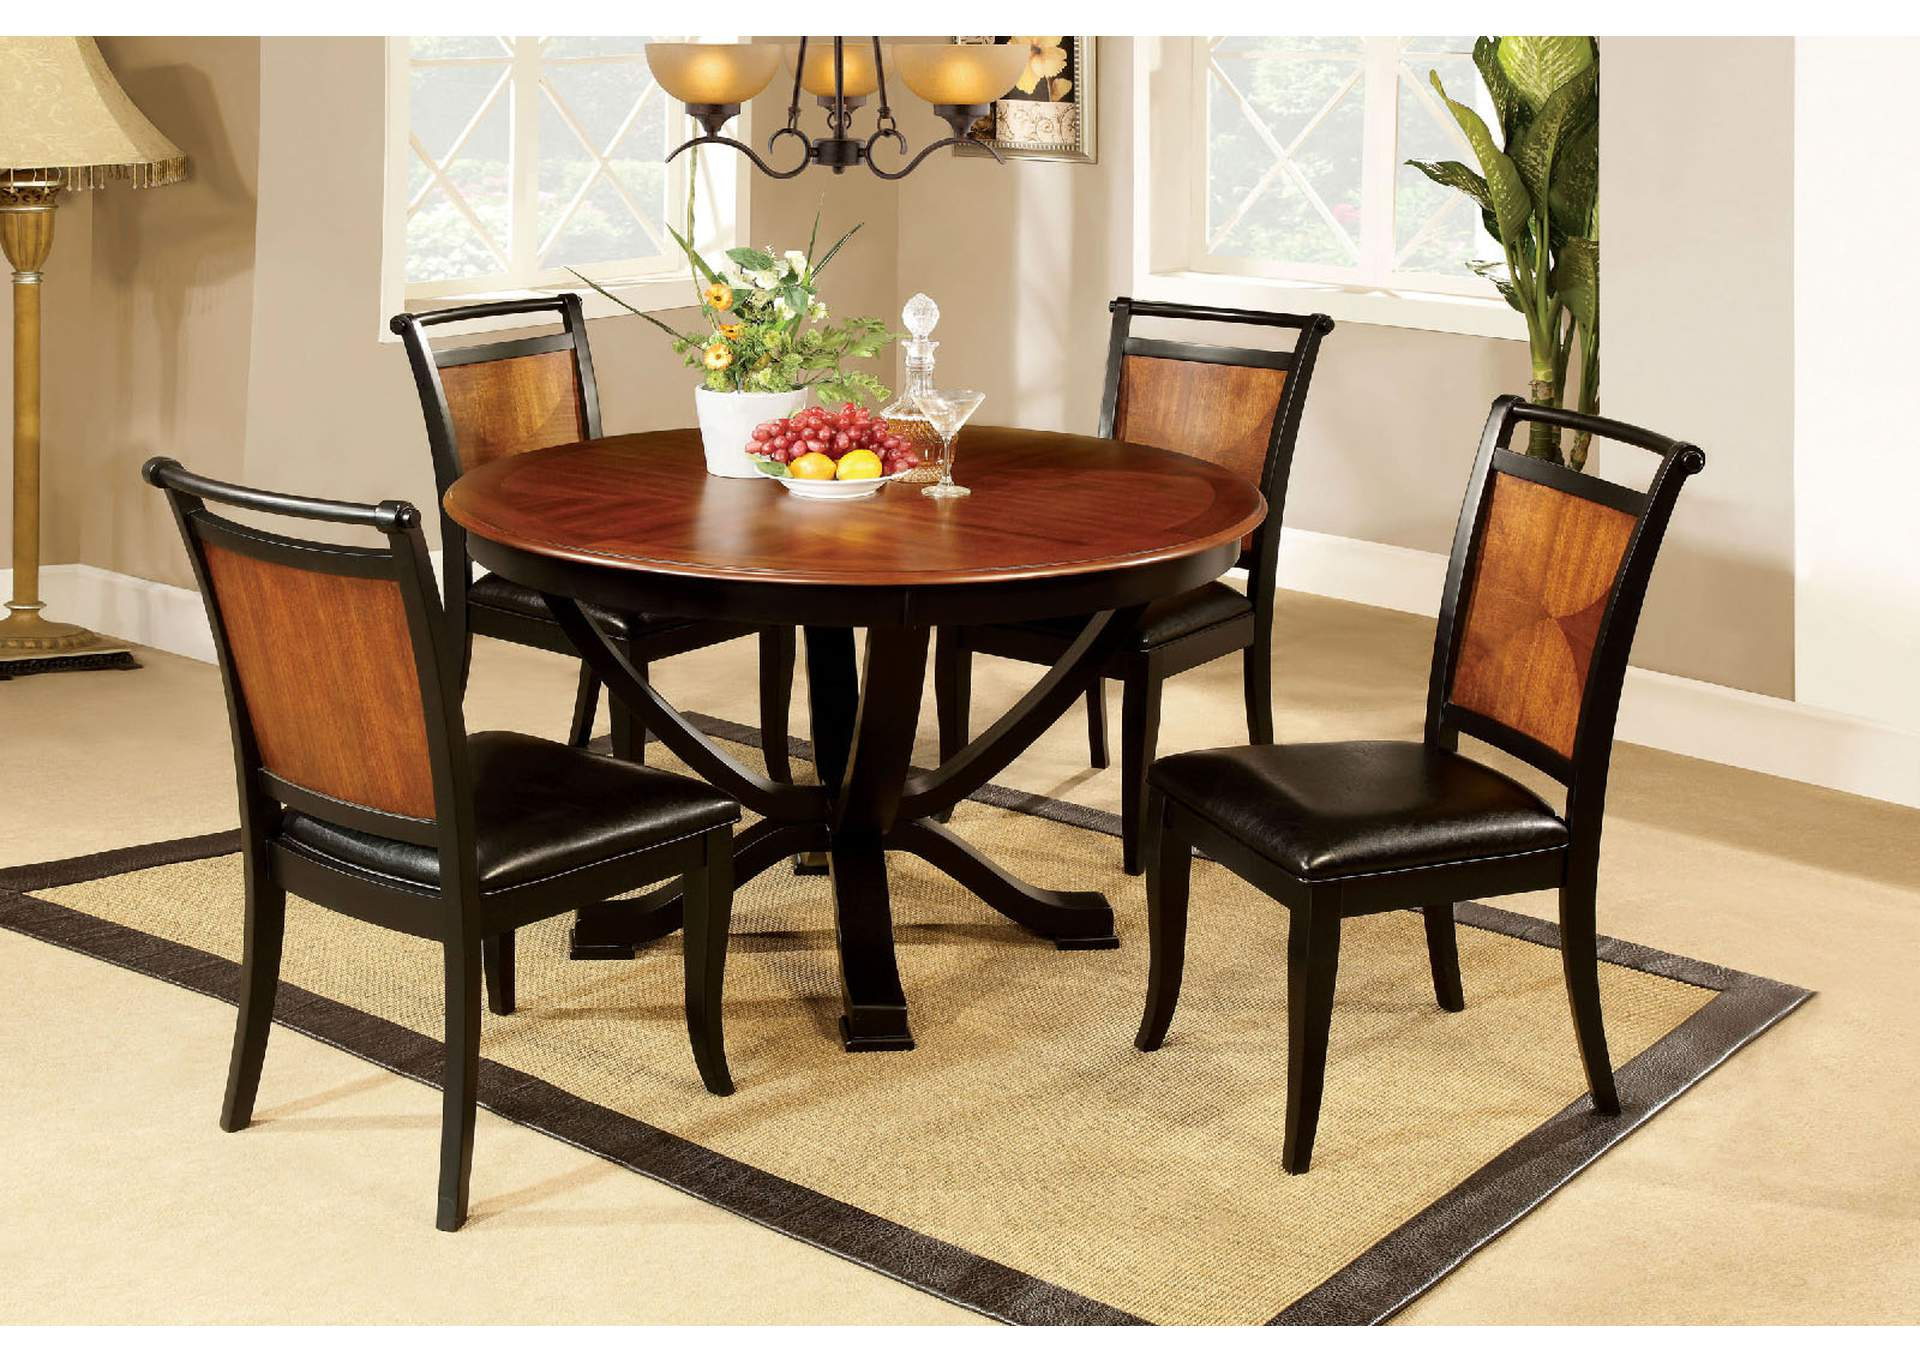 Salida l Black & Acacia Round Dining Table w/4 Side Chairs,Furniture of America